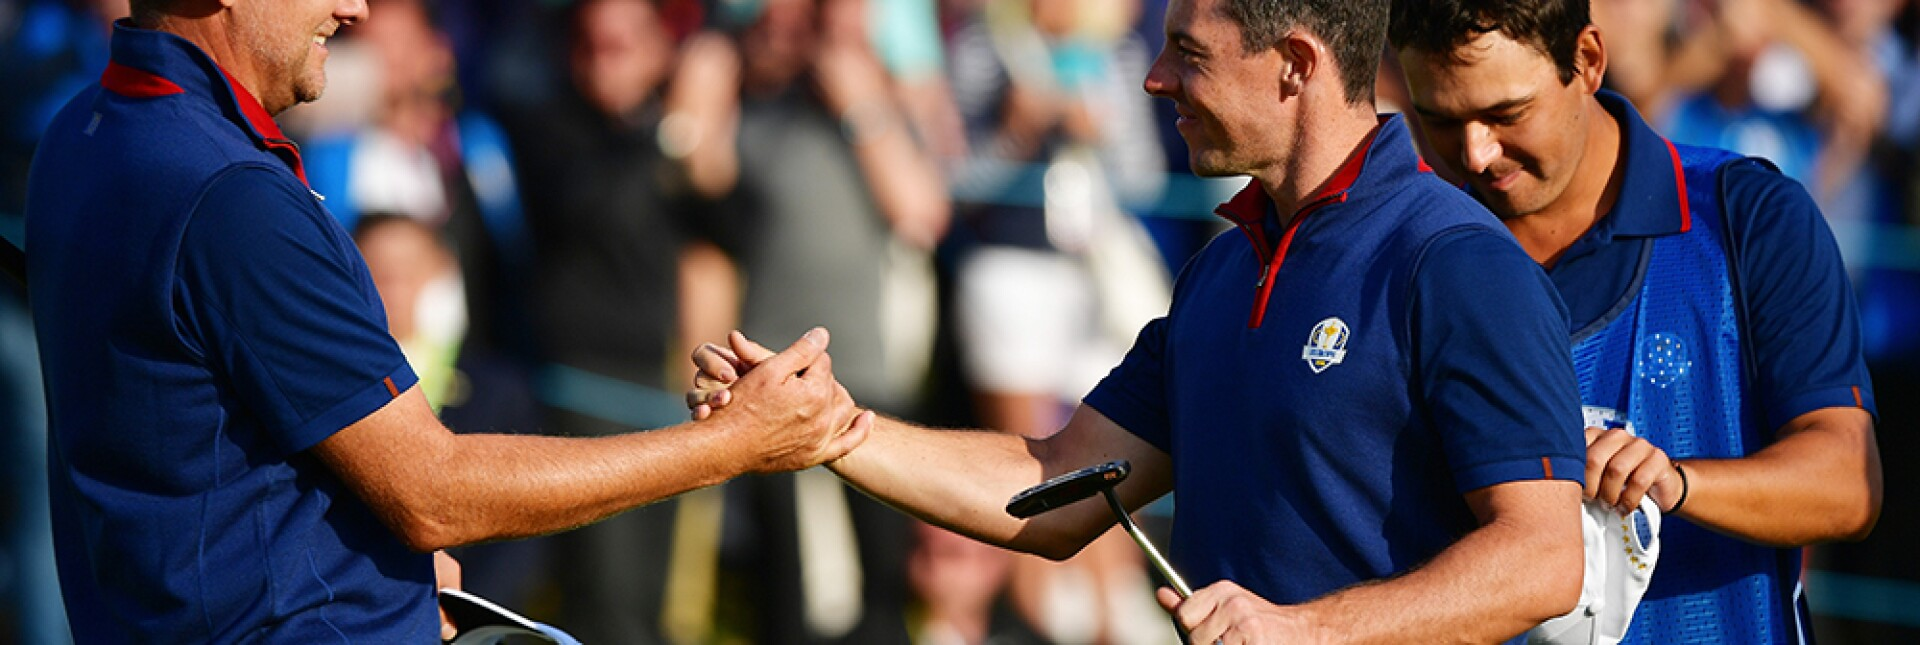 Ian-Poulter-Rory-McIlroy-2018-Ryder-Cup.jpg